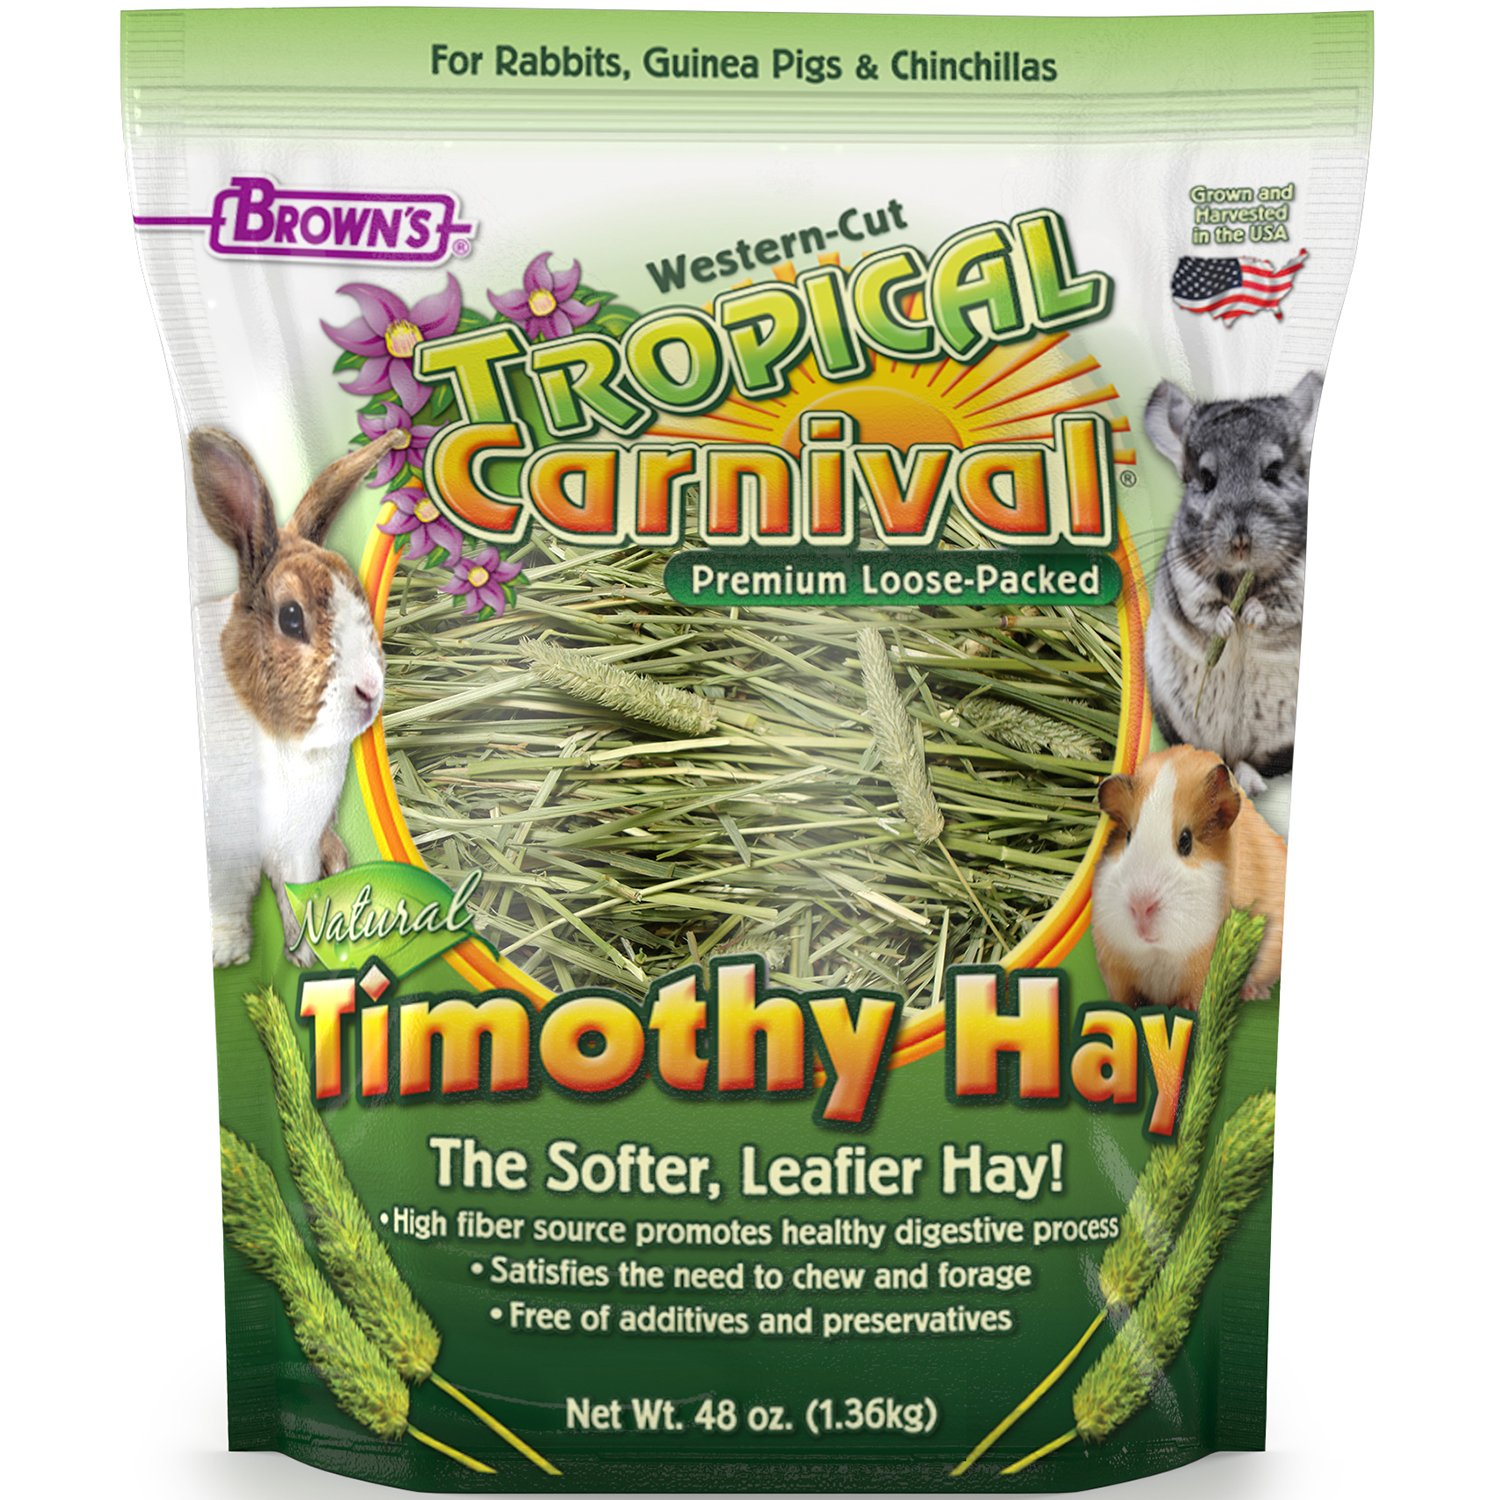 F.M. Brown's Tropical Carnival Natural Timothy Hay for Guinea Pigs, Rabbits, and Other Small Animals, with High Fiber for Healthy Digestion by Tropical Carnival